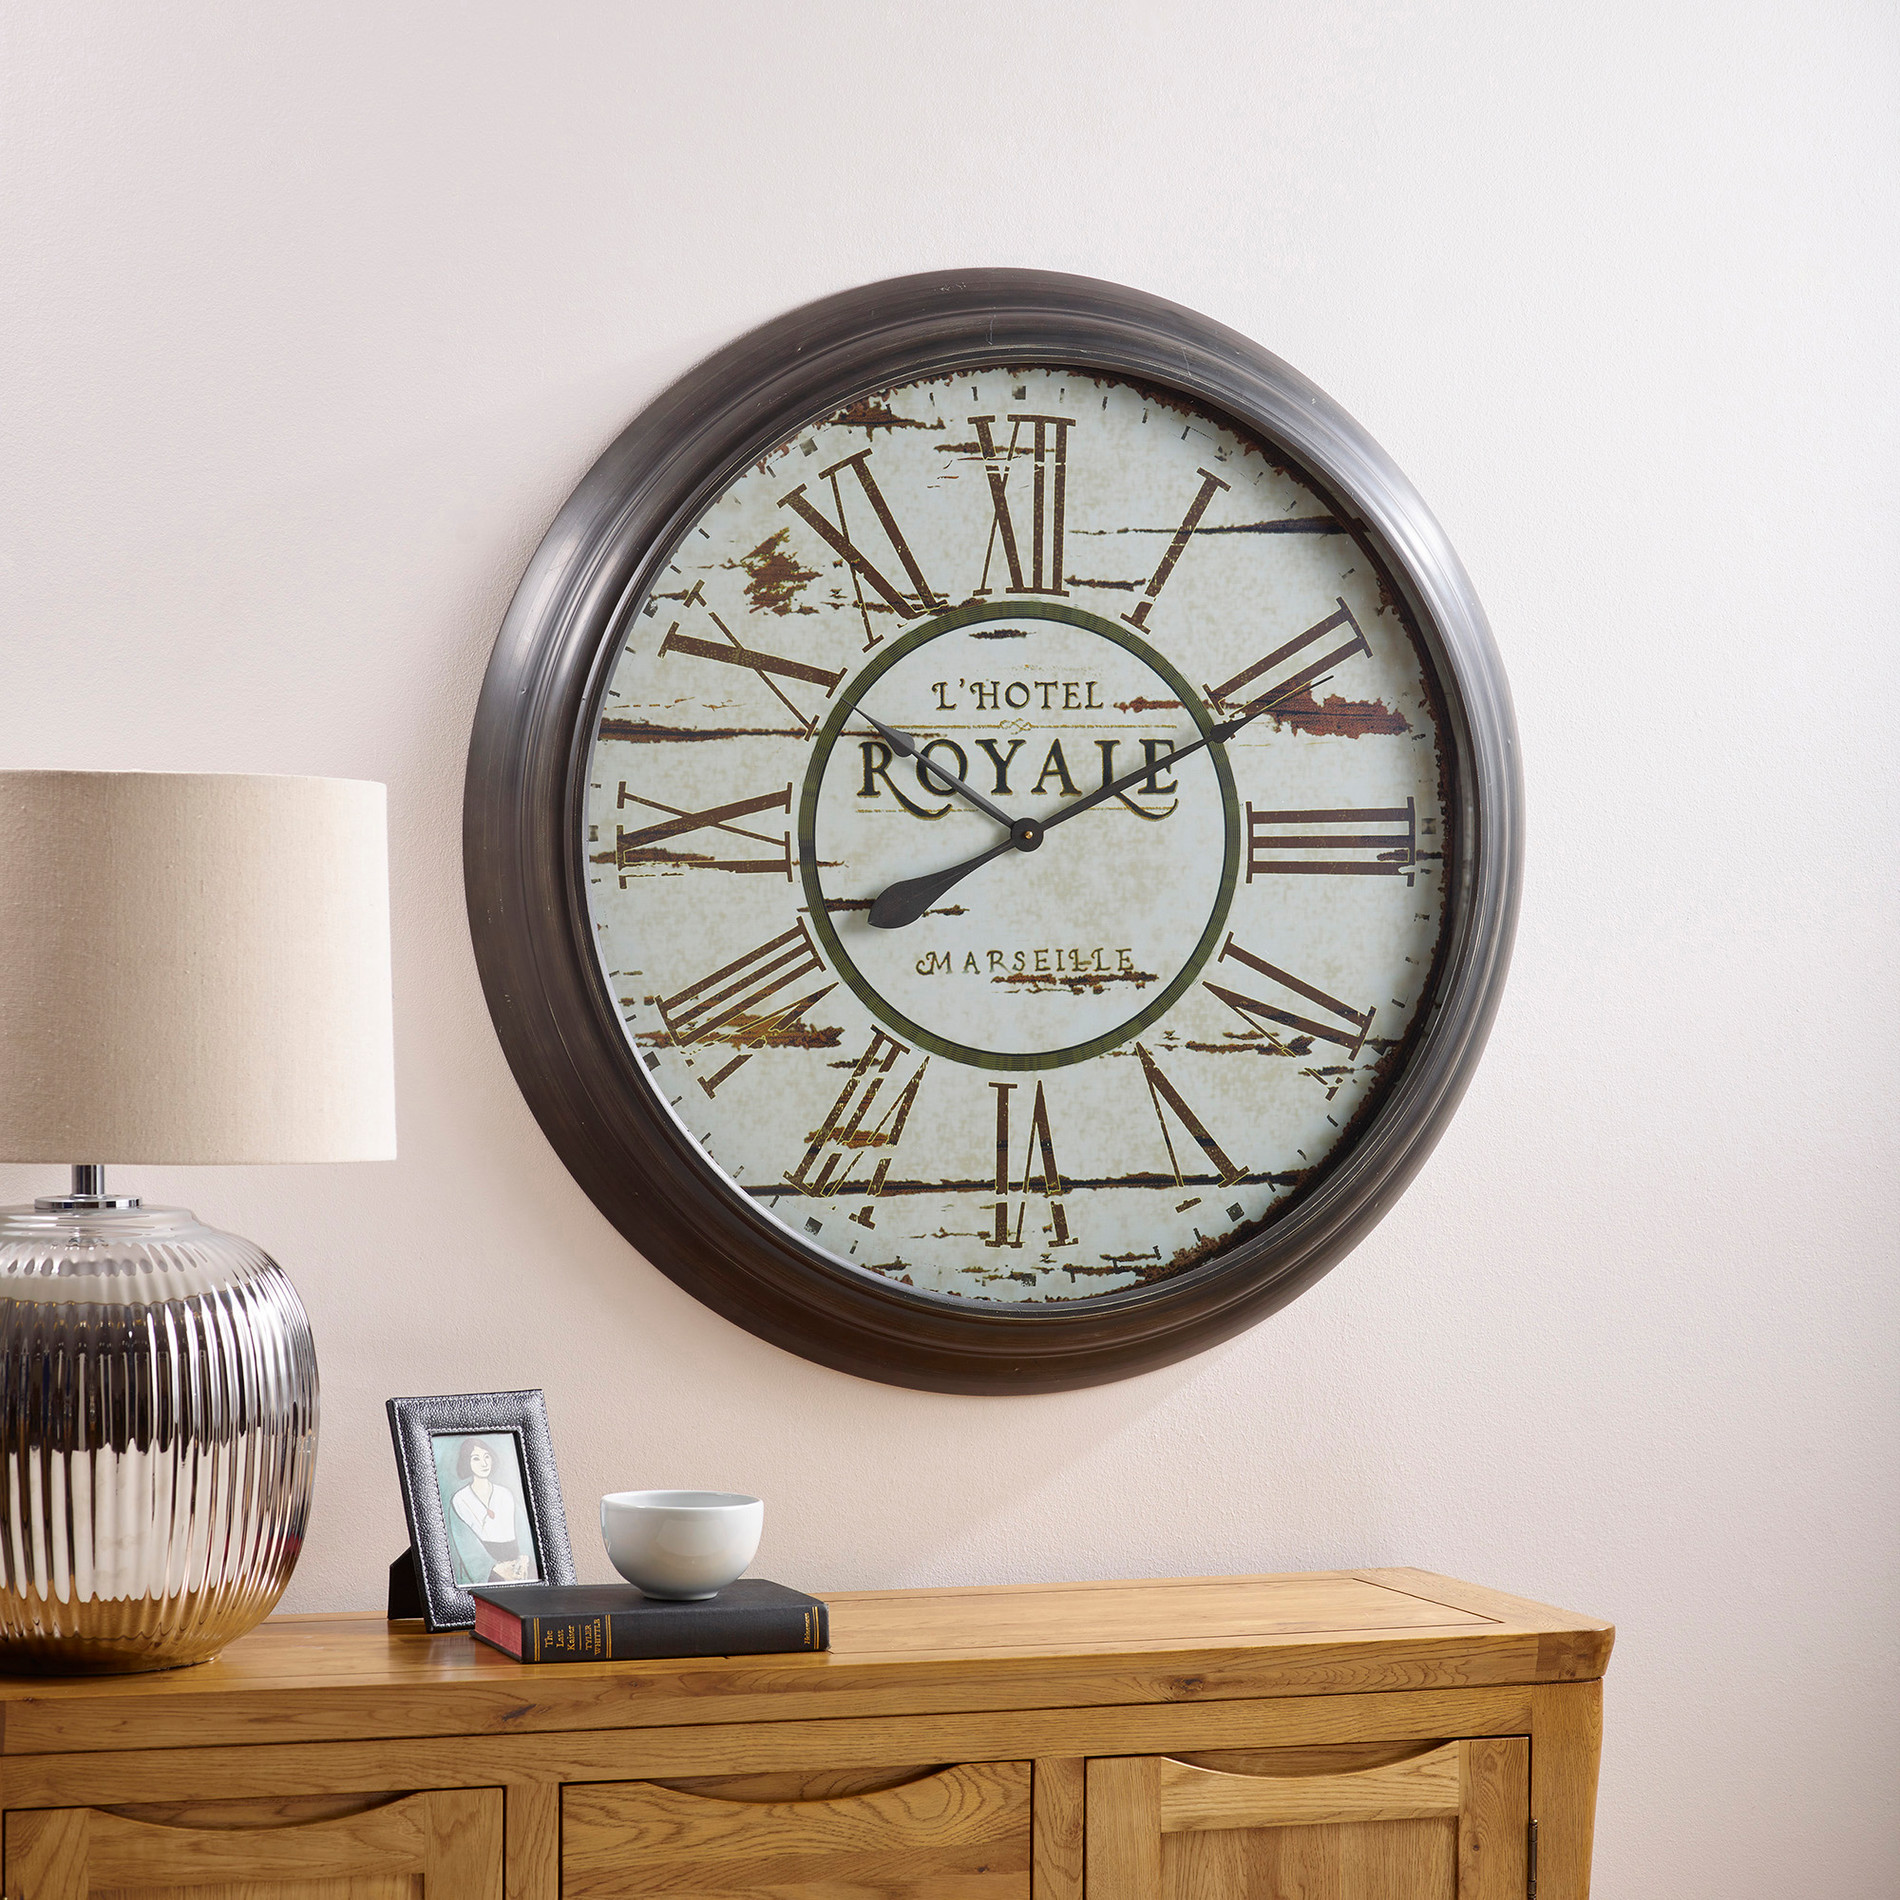 Clocks spend over 1500 and get one free oak furniture land express delivery royale wall clock amipublicfo Gallery